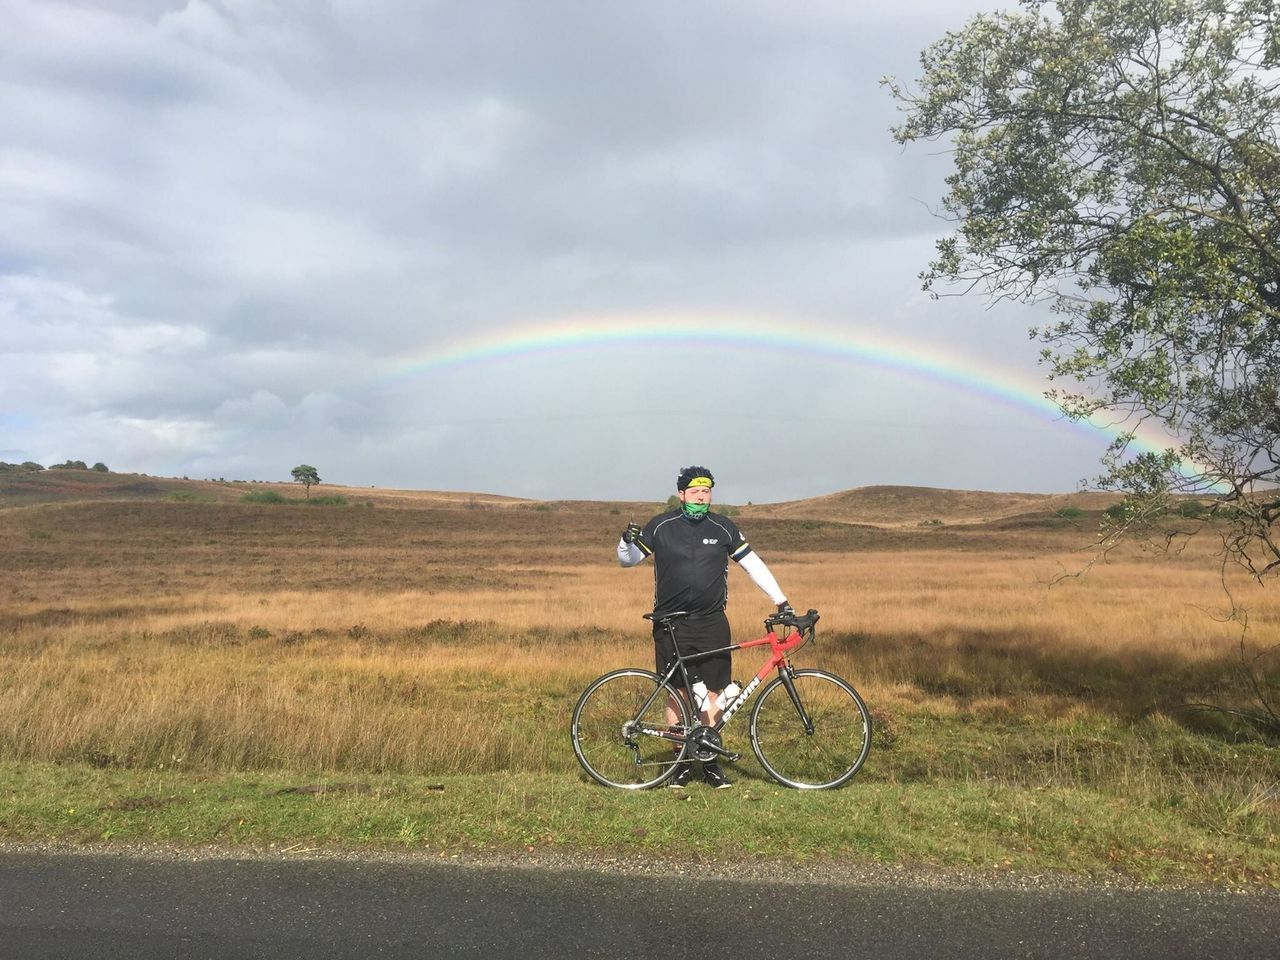 Beautiful stock photos of regenbogen, bicycle, cloud - sky, one person, full length